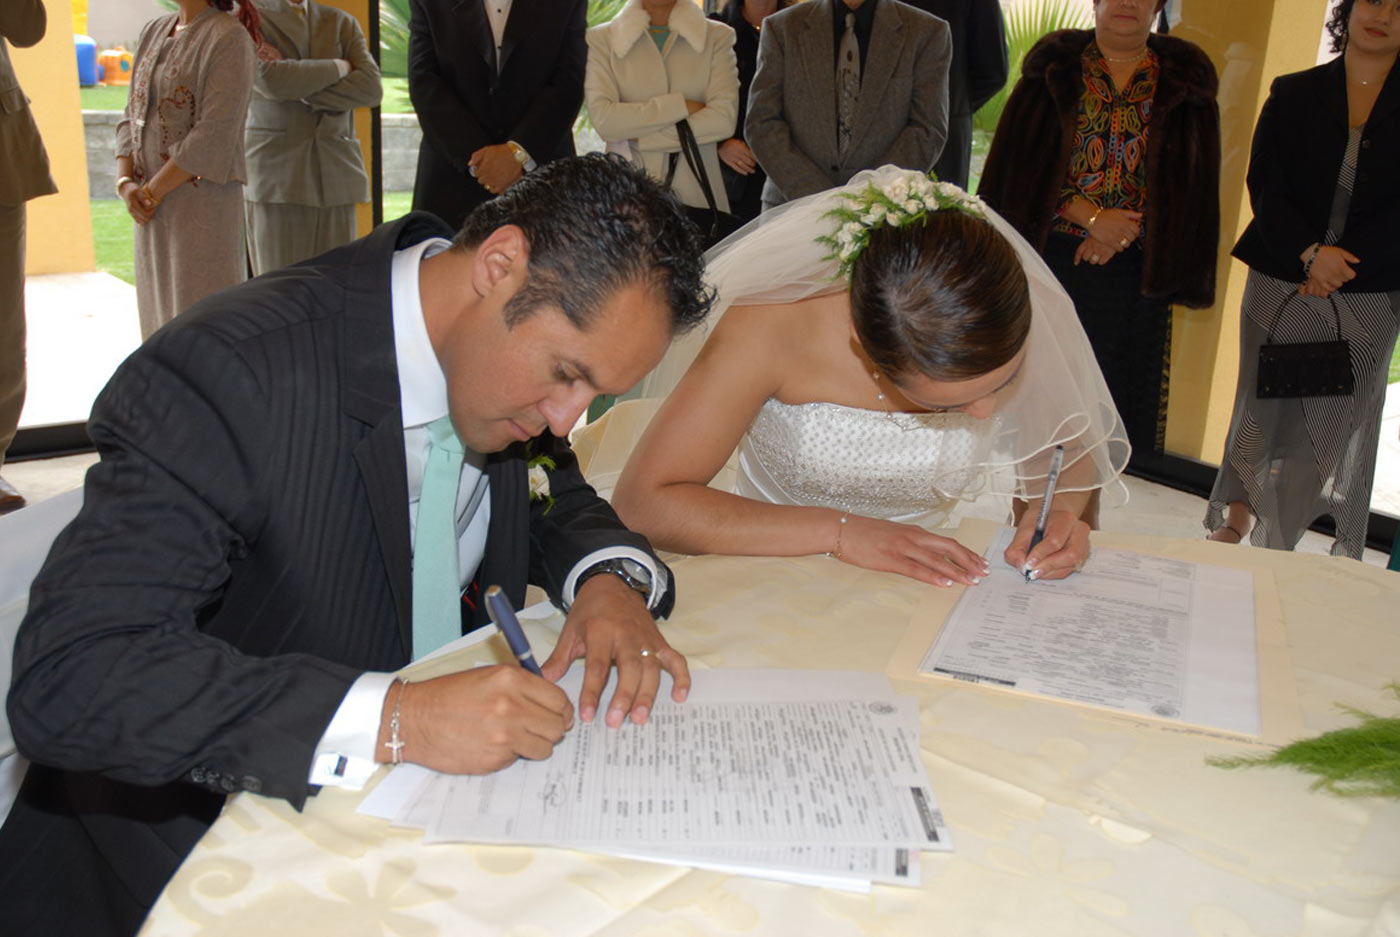 Decoracion Ceremonia Civil Of Documentos Para Casarse En Colombia Doce Bodas